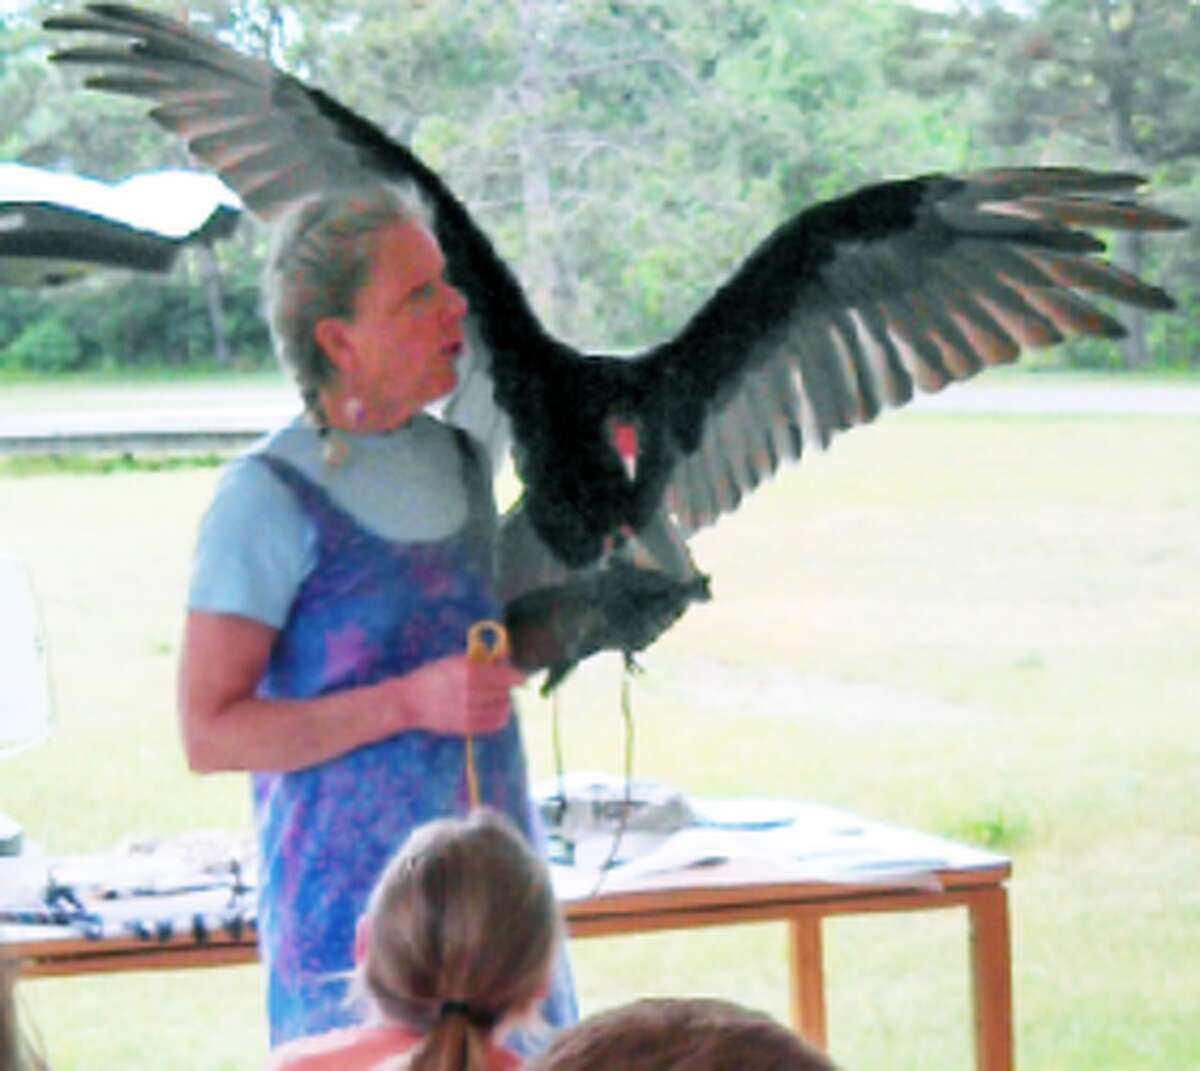 meeting raptors: Rebecca Lessard of Wings of Wonder, which is a non-profit raptor rehabilitation facility located in Empire, shows off a vulture while teaching attendees about the large bird. (Courtesy photo)